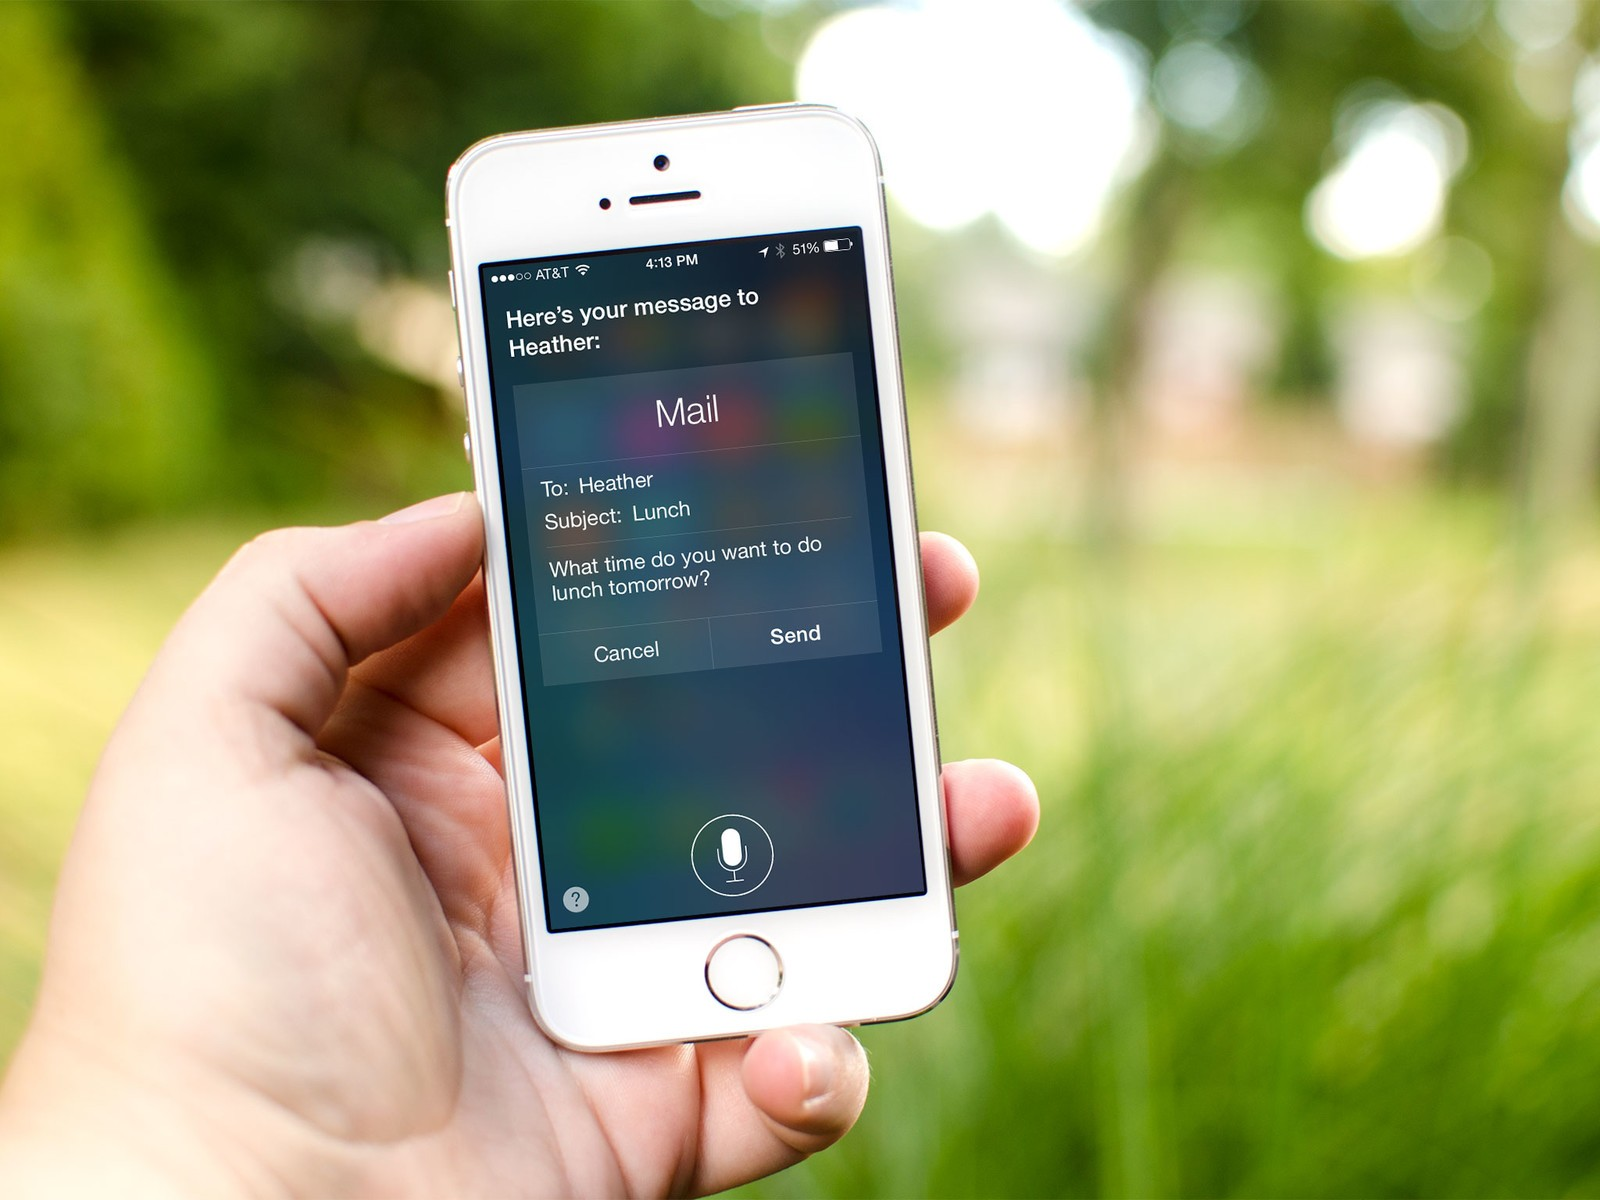 How to call, message, and email your contacts using Siri